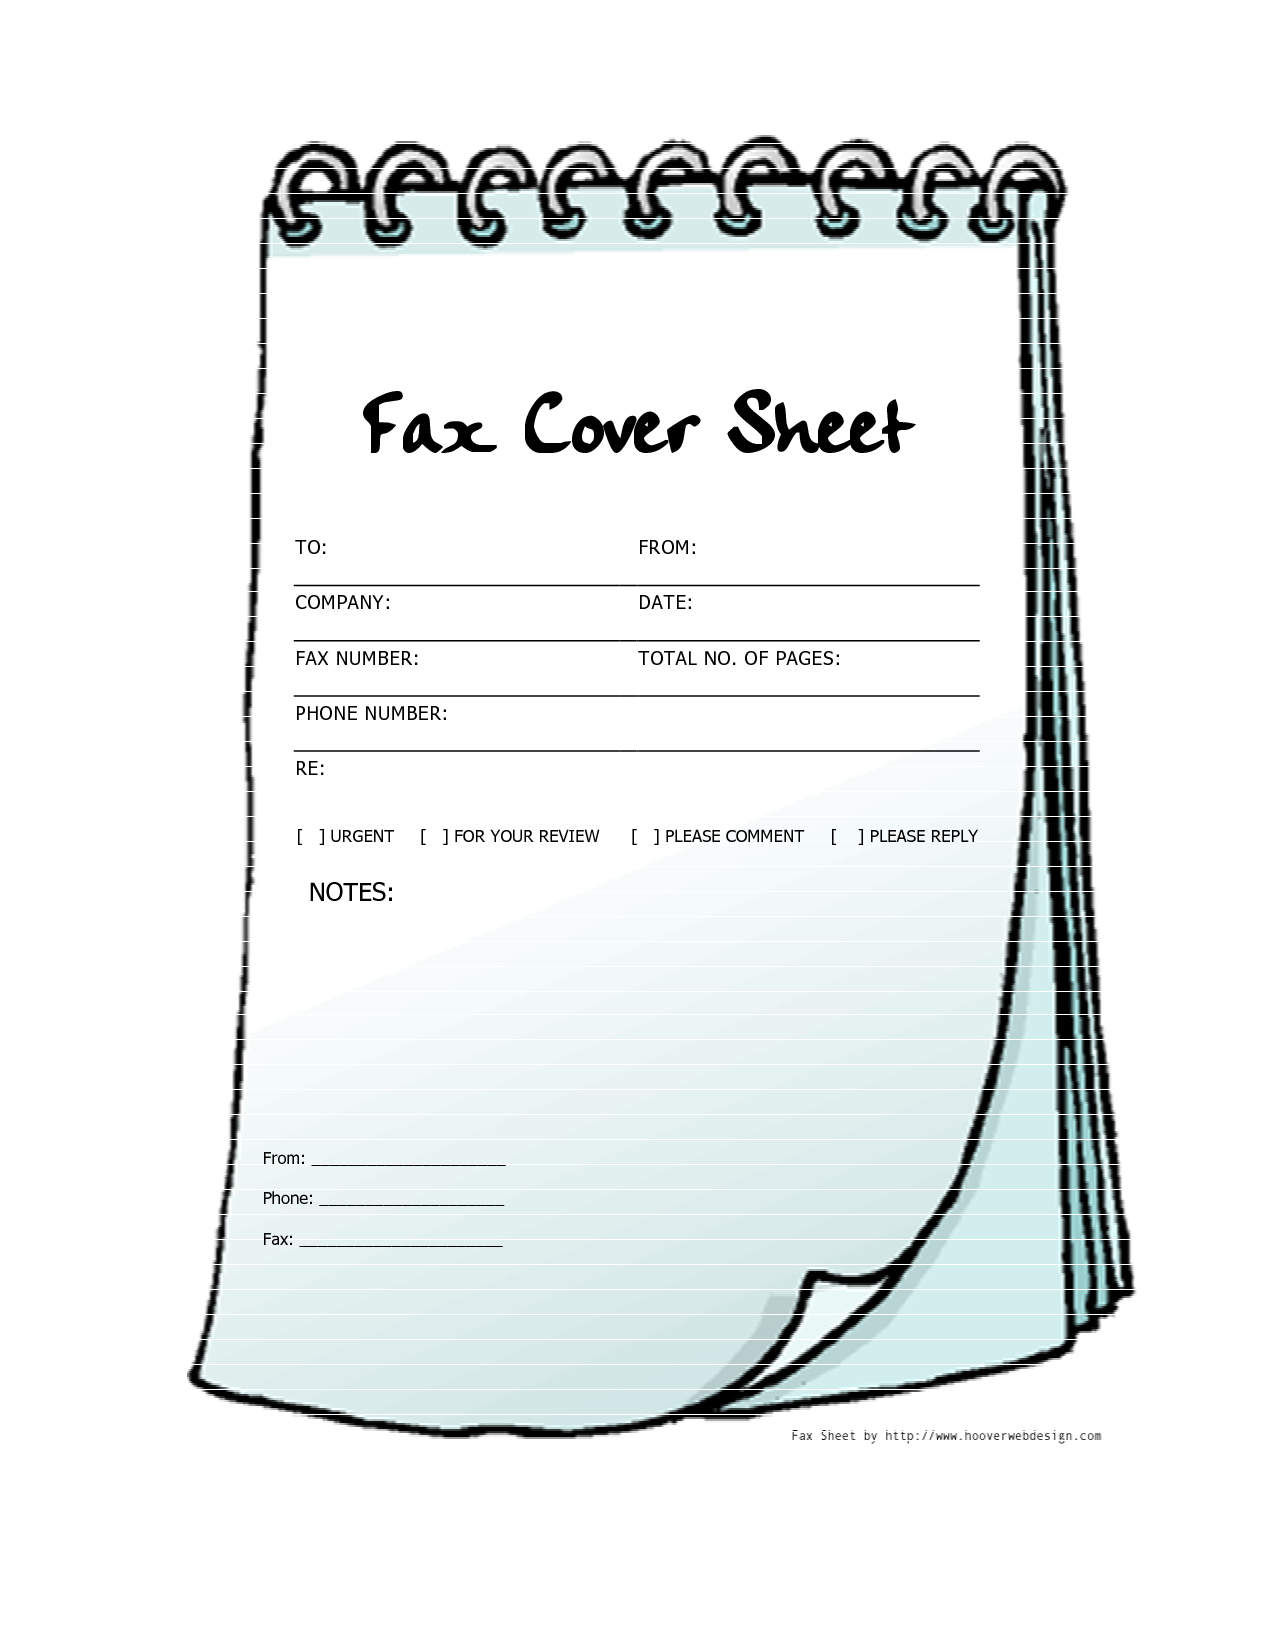 Free Printable Fax Cover Sheets | Free Printable Fax Cover Sheet - Free Printable Fax Cover Sheet